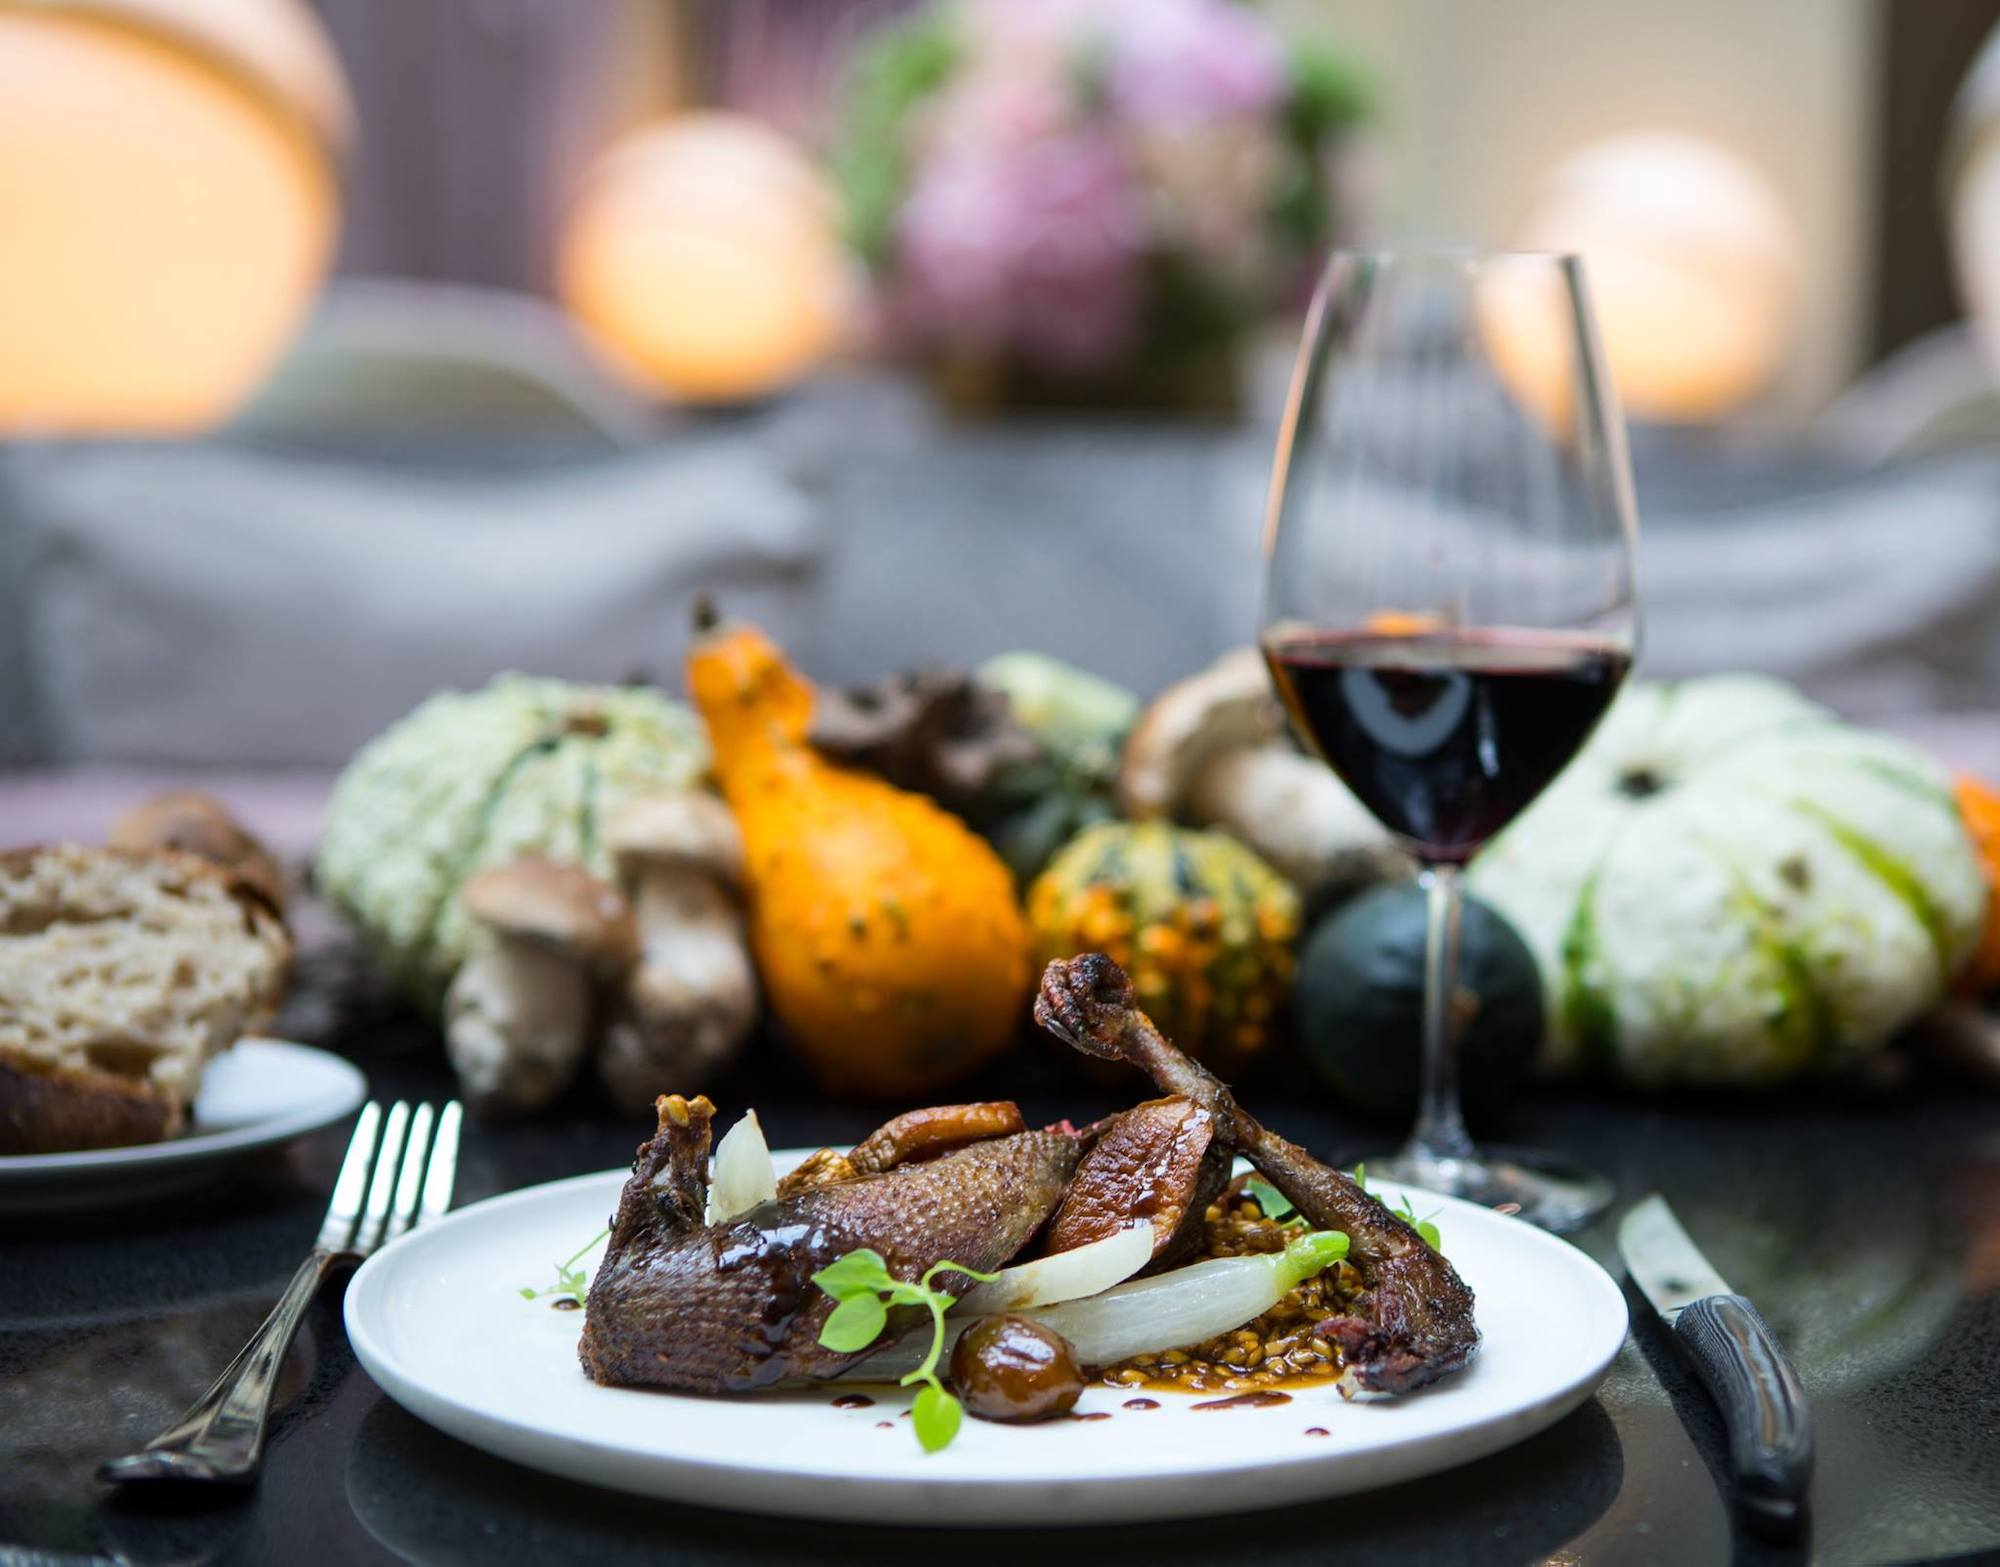 A white plate with roast pigeon, wheat risotto, turnip and chestnut, with cutlery on either side and a glass of red wine in the background, some bread, and an assortment of decorative squash.